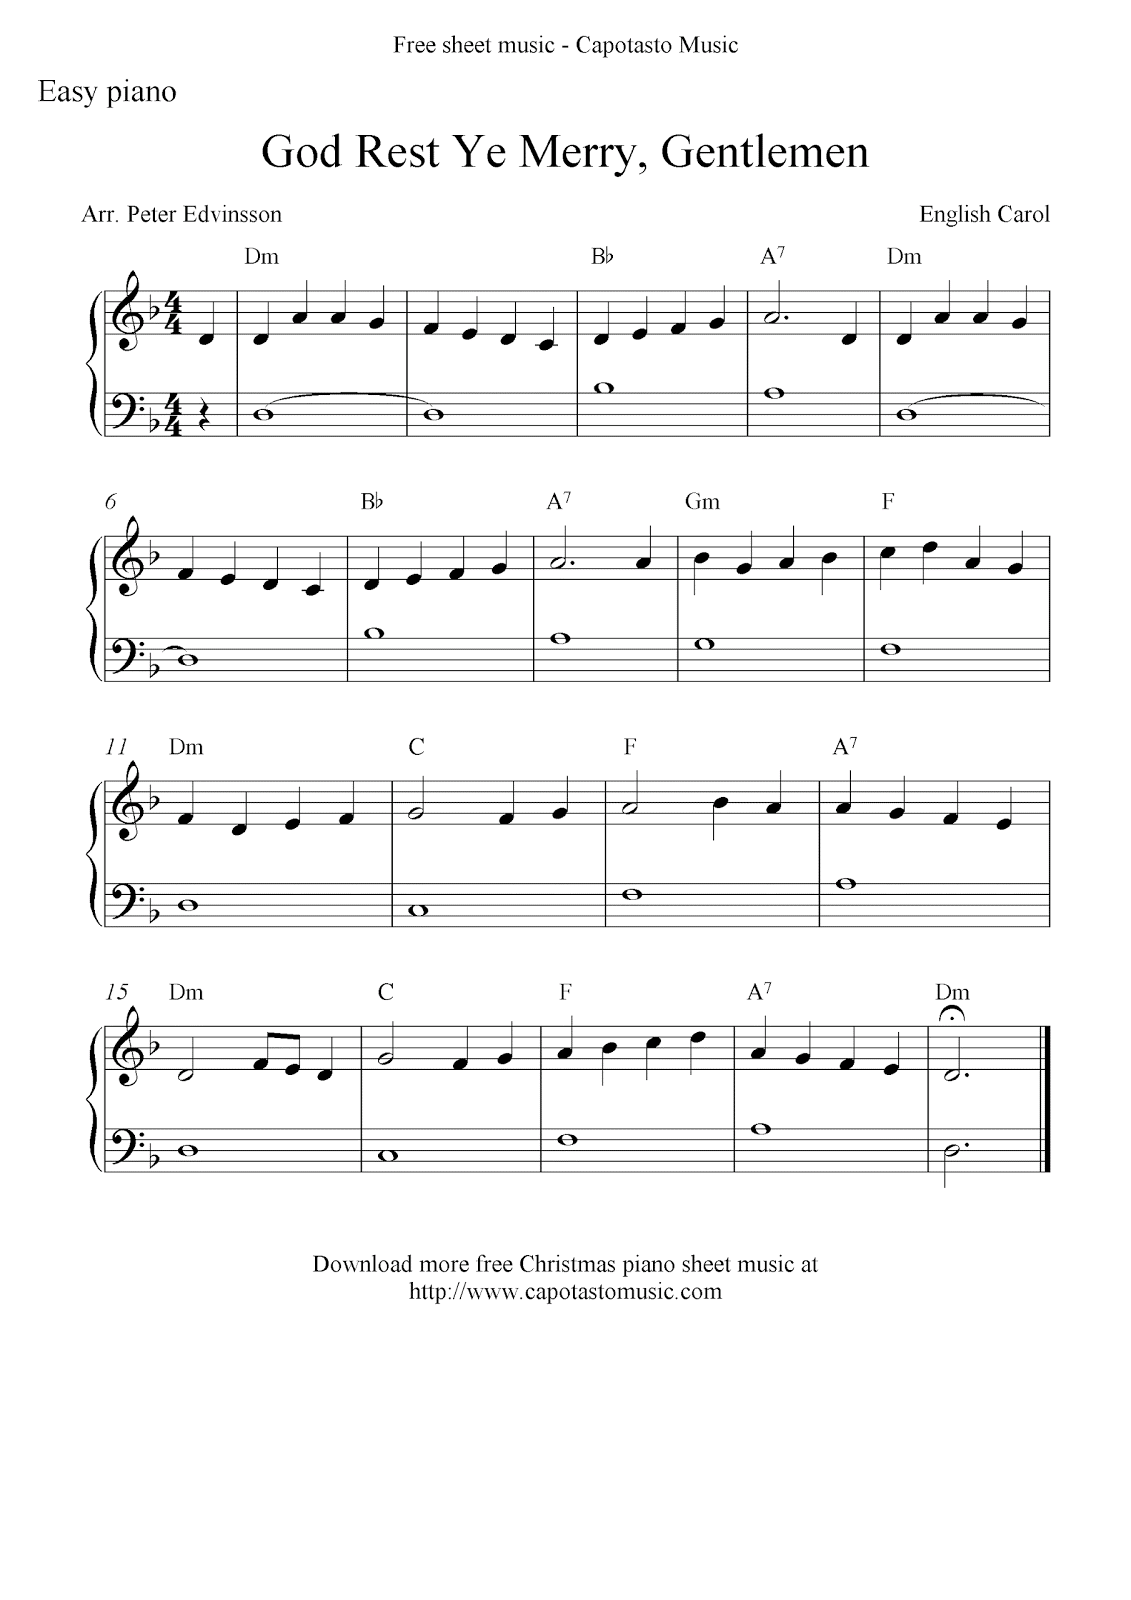 This is an image of Persnickety Free Printable Sheet Music